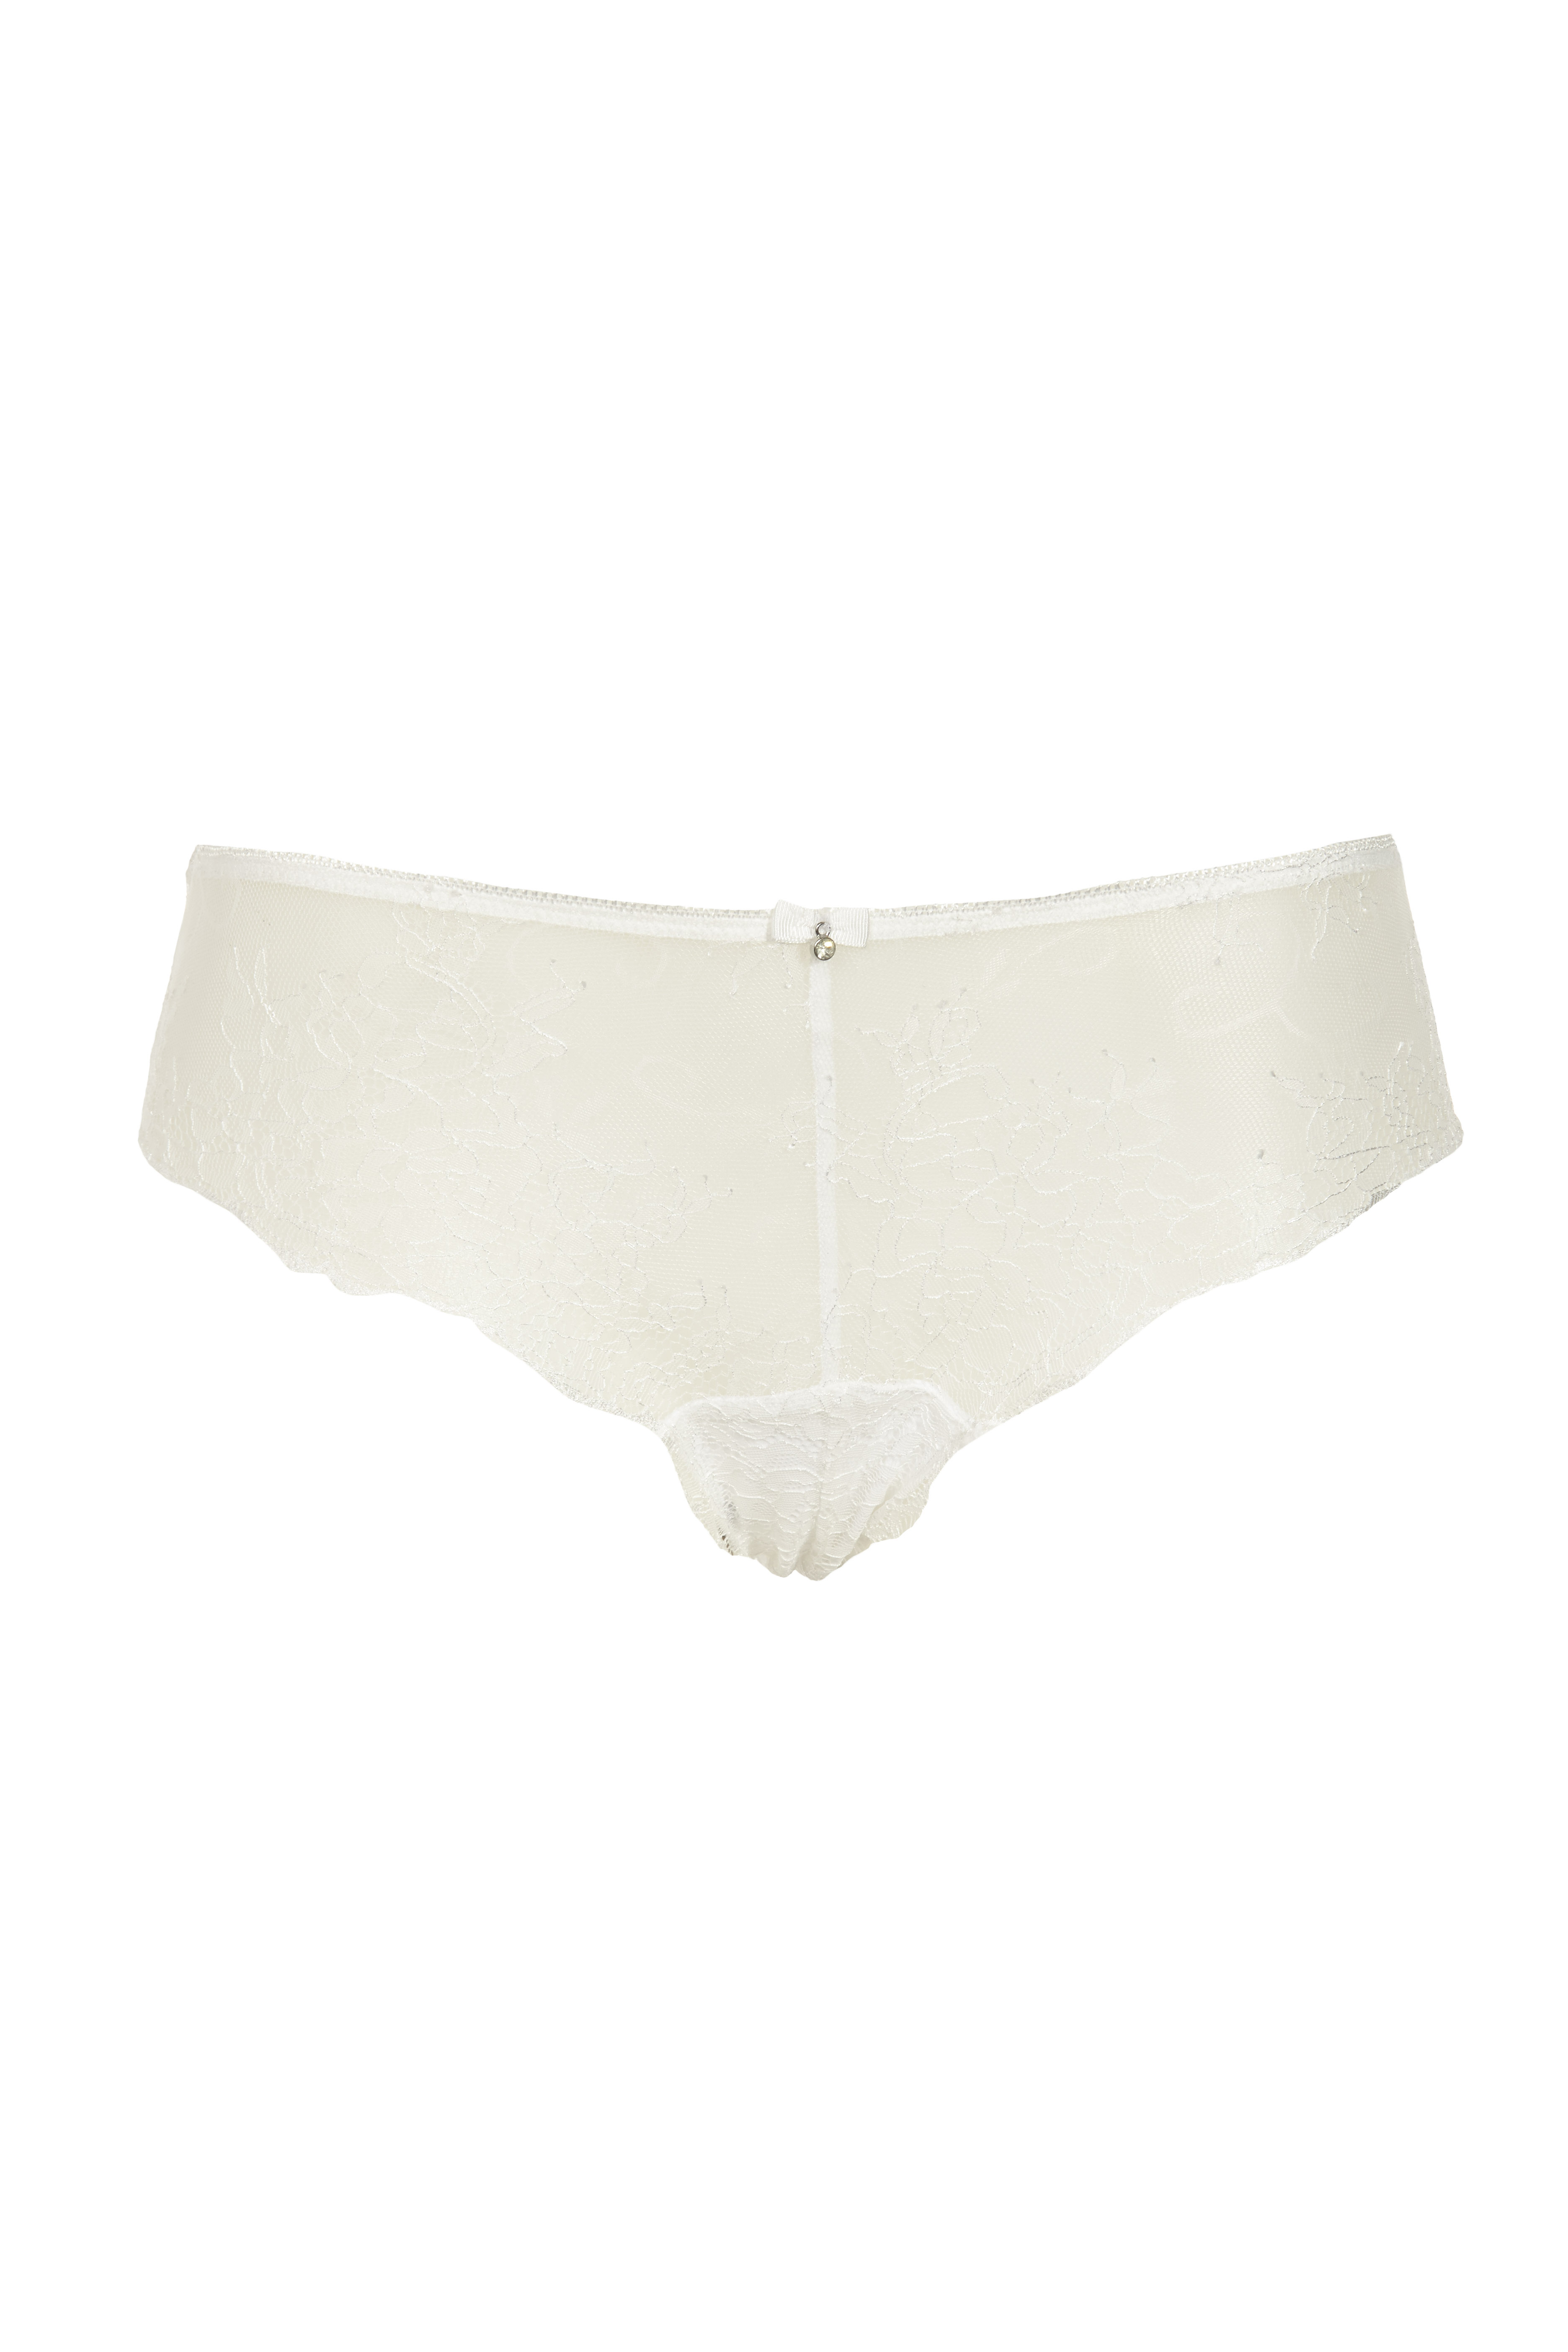 cotton-on-body_bridal_in-love-lace-brasiliano_nz16-95-sep-mar